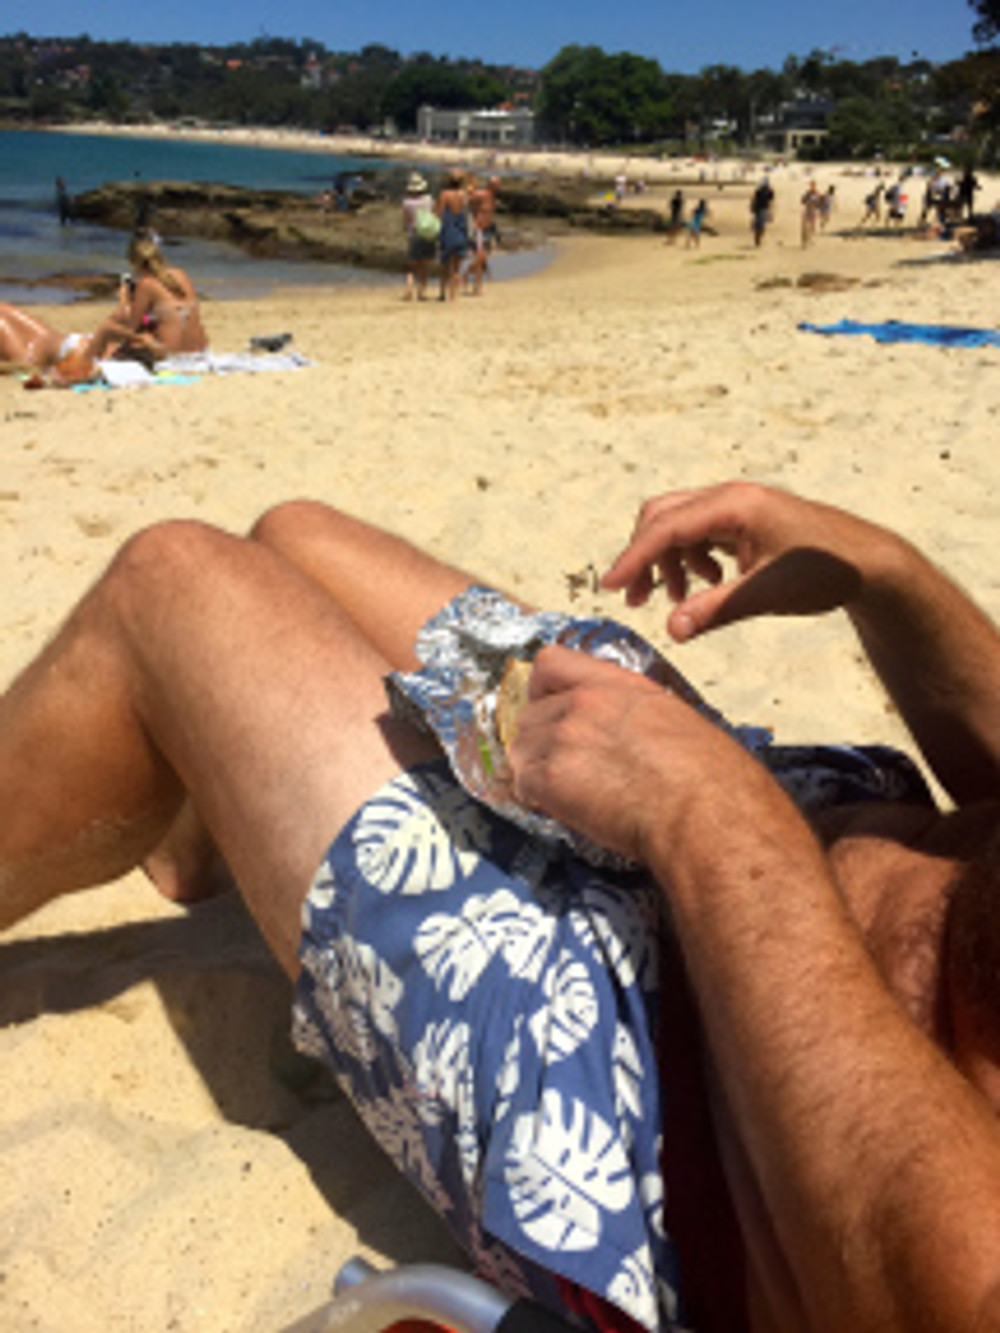 Nailing The Middle-Aged Beach Routine